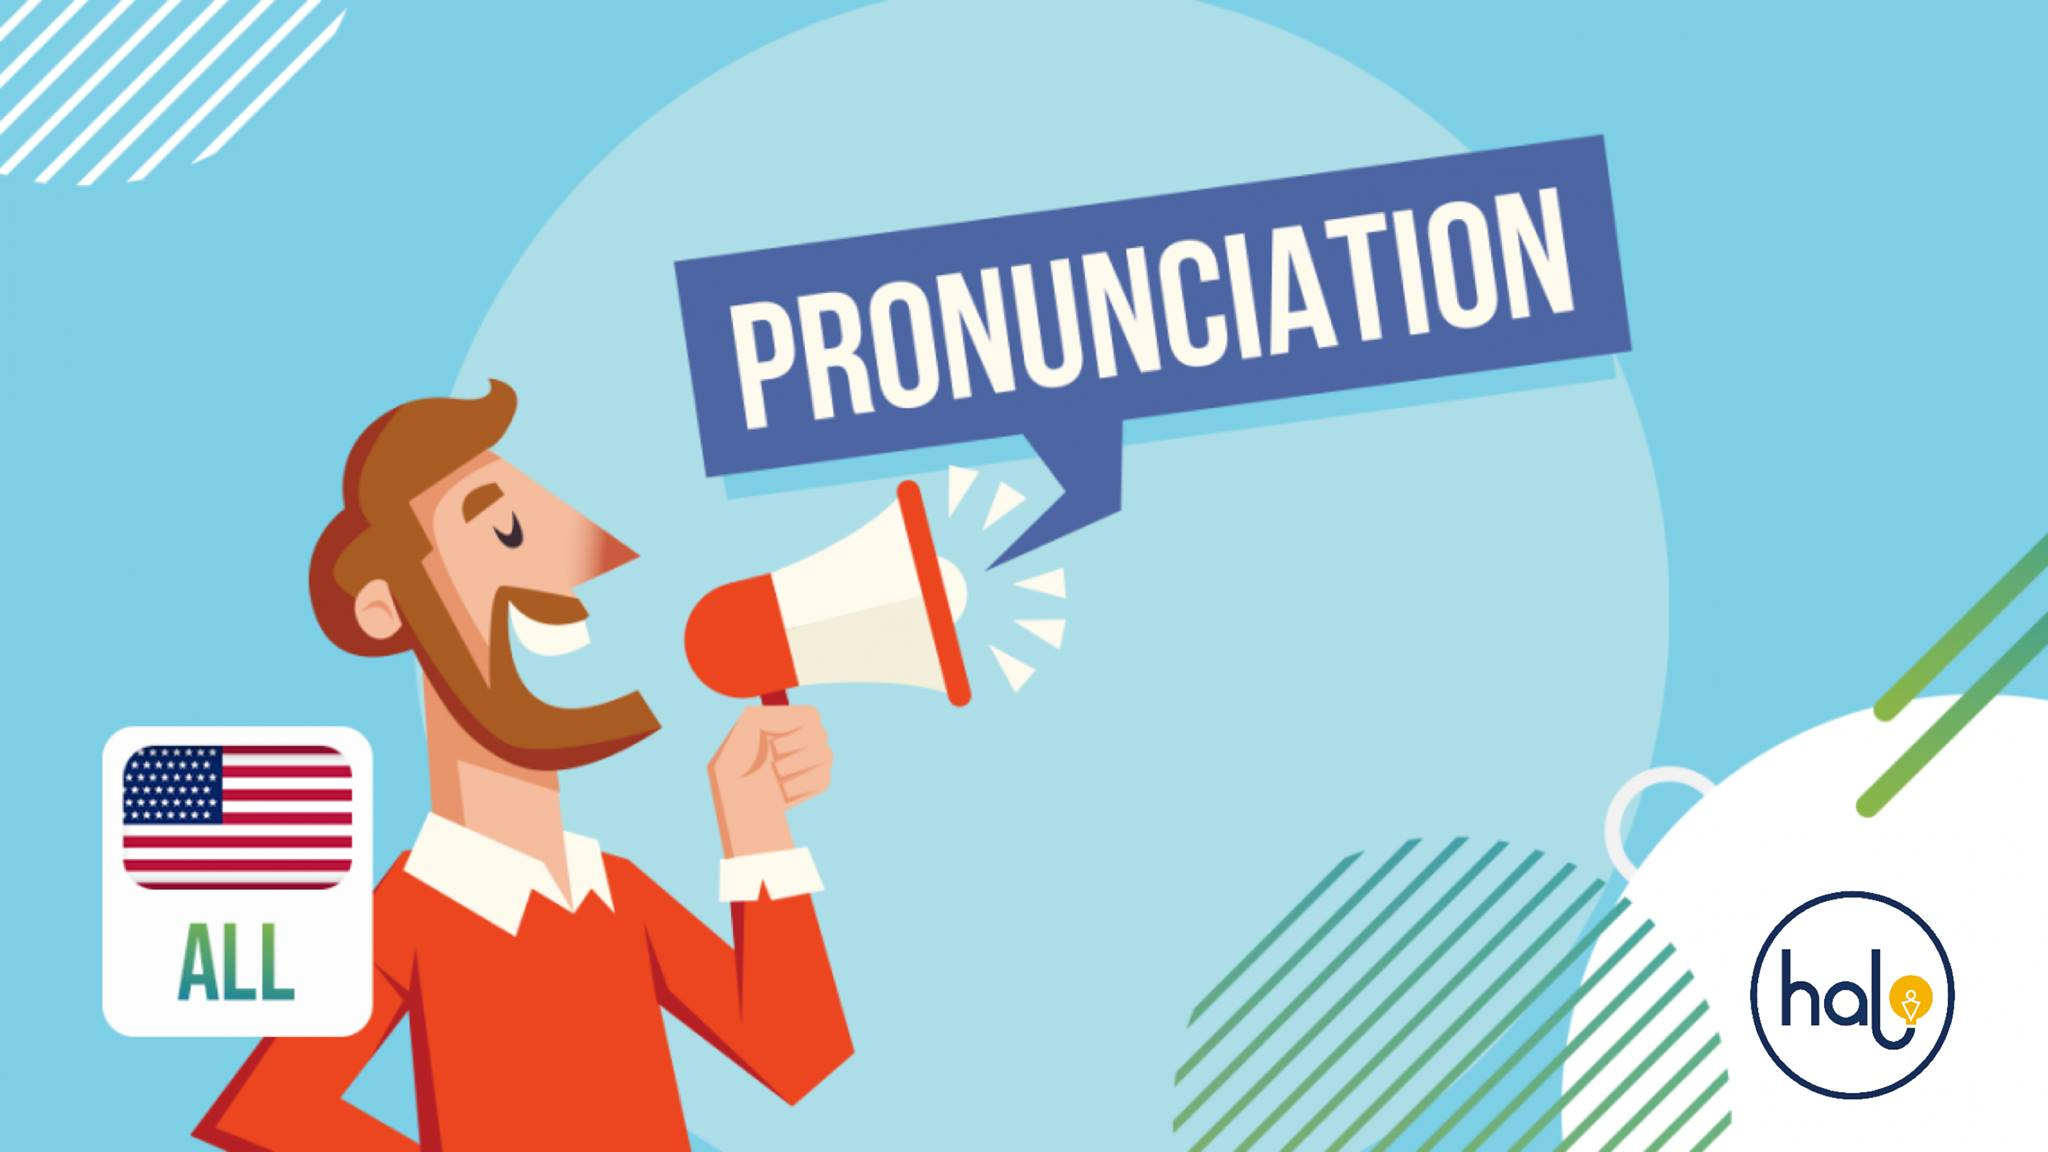 10 TIPS for practicing PRONUNCIATION